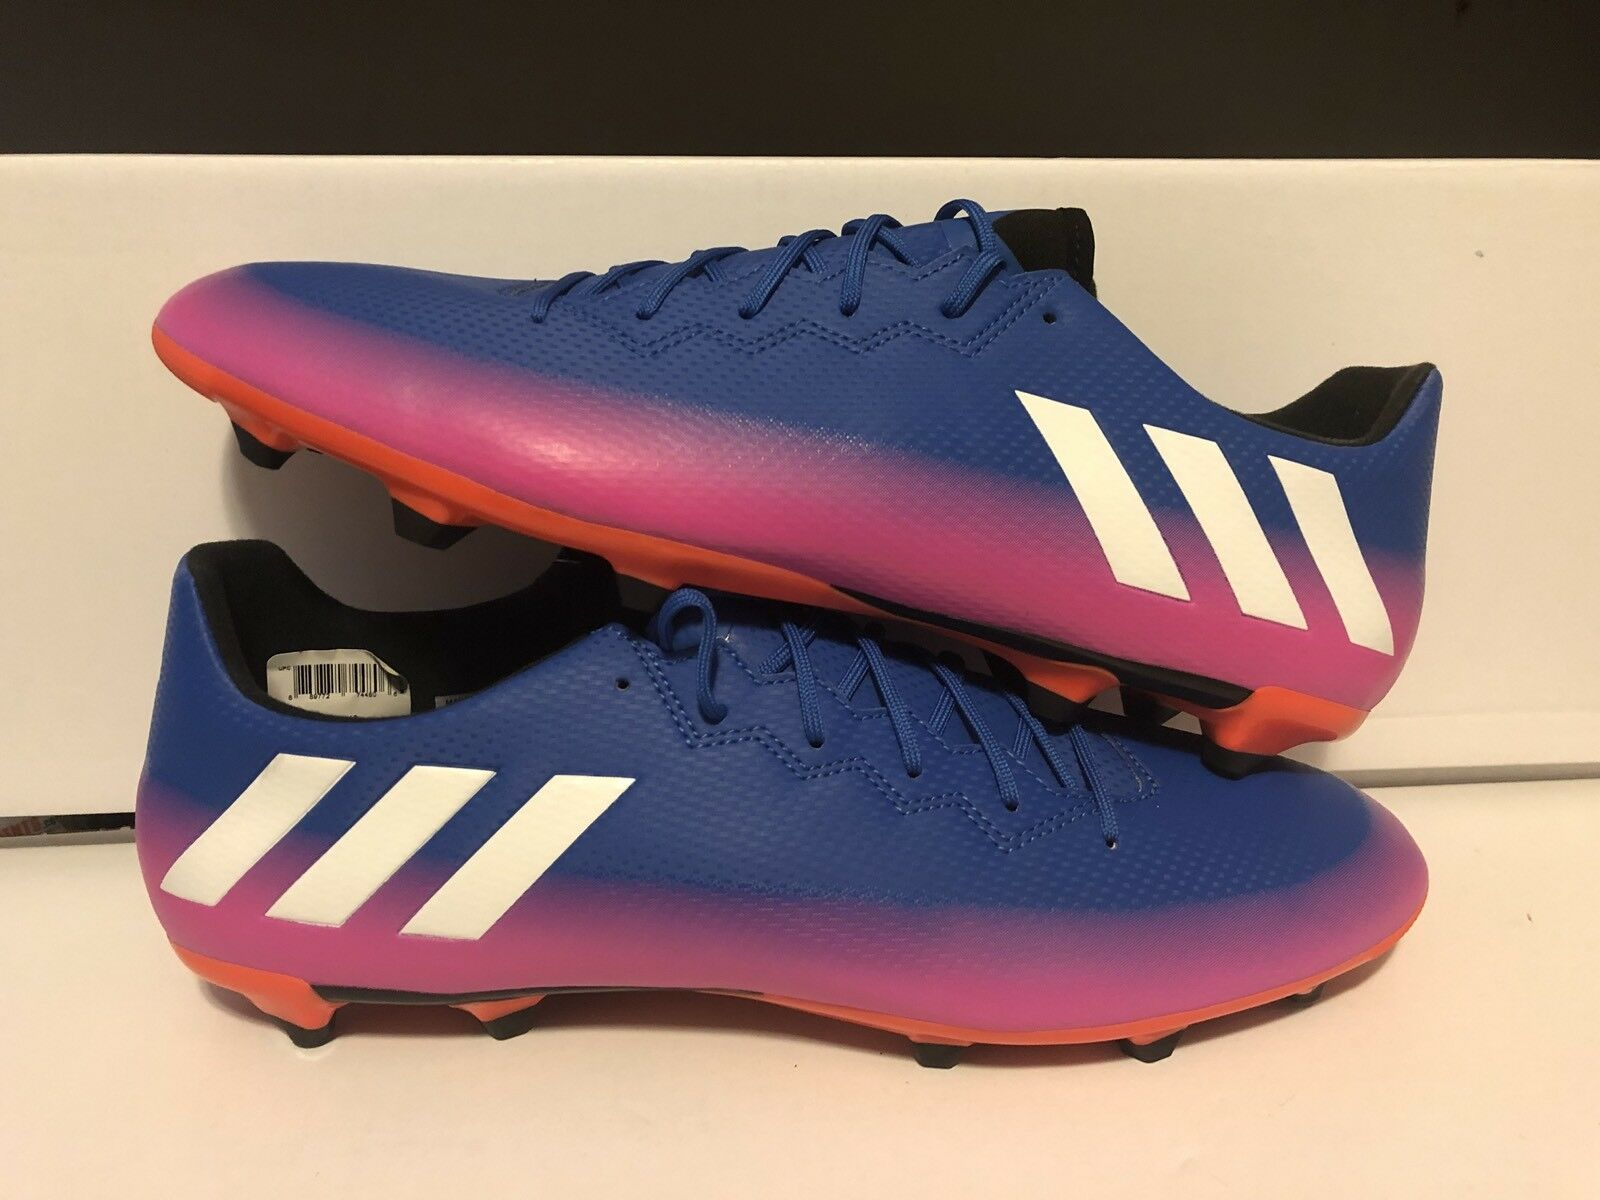 55b43a6993a ADIDAS Messi 16.3 FG Ground Soccer Cleats Men s Size 13 Brand NEW Firm  nudkws5885-Men